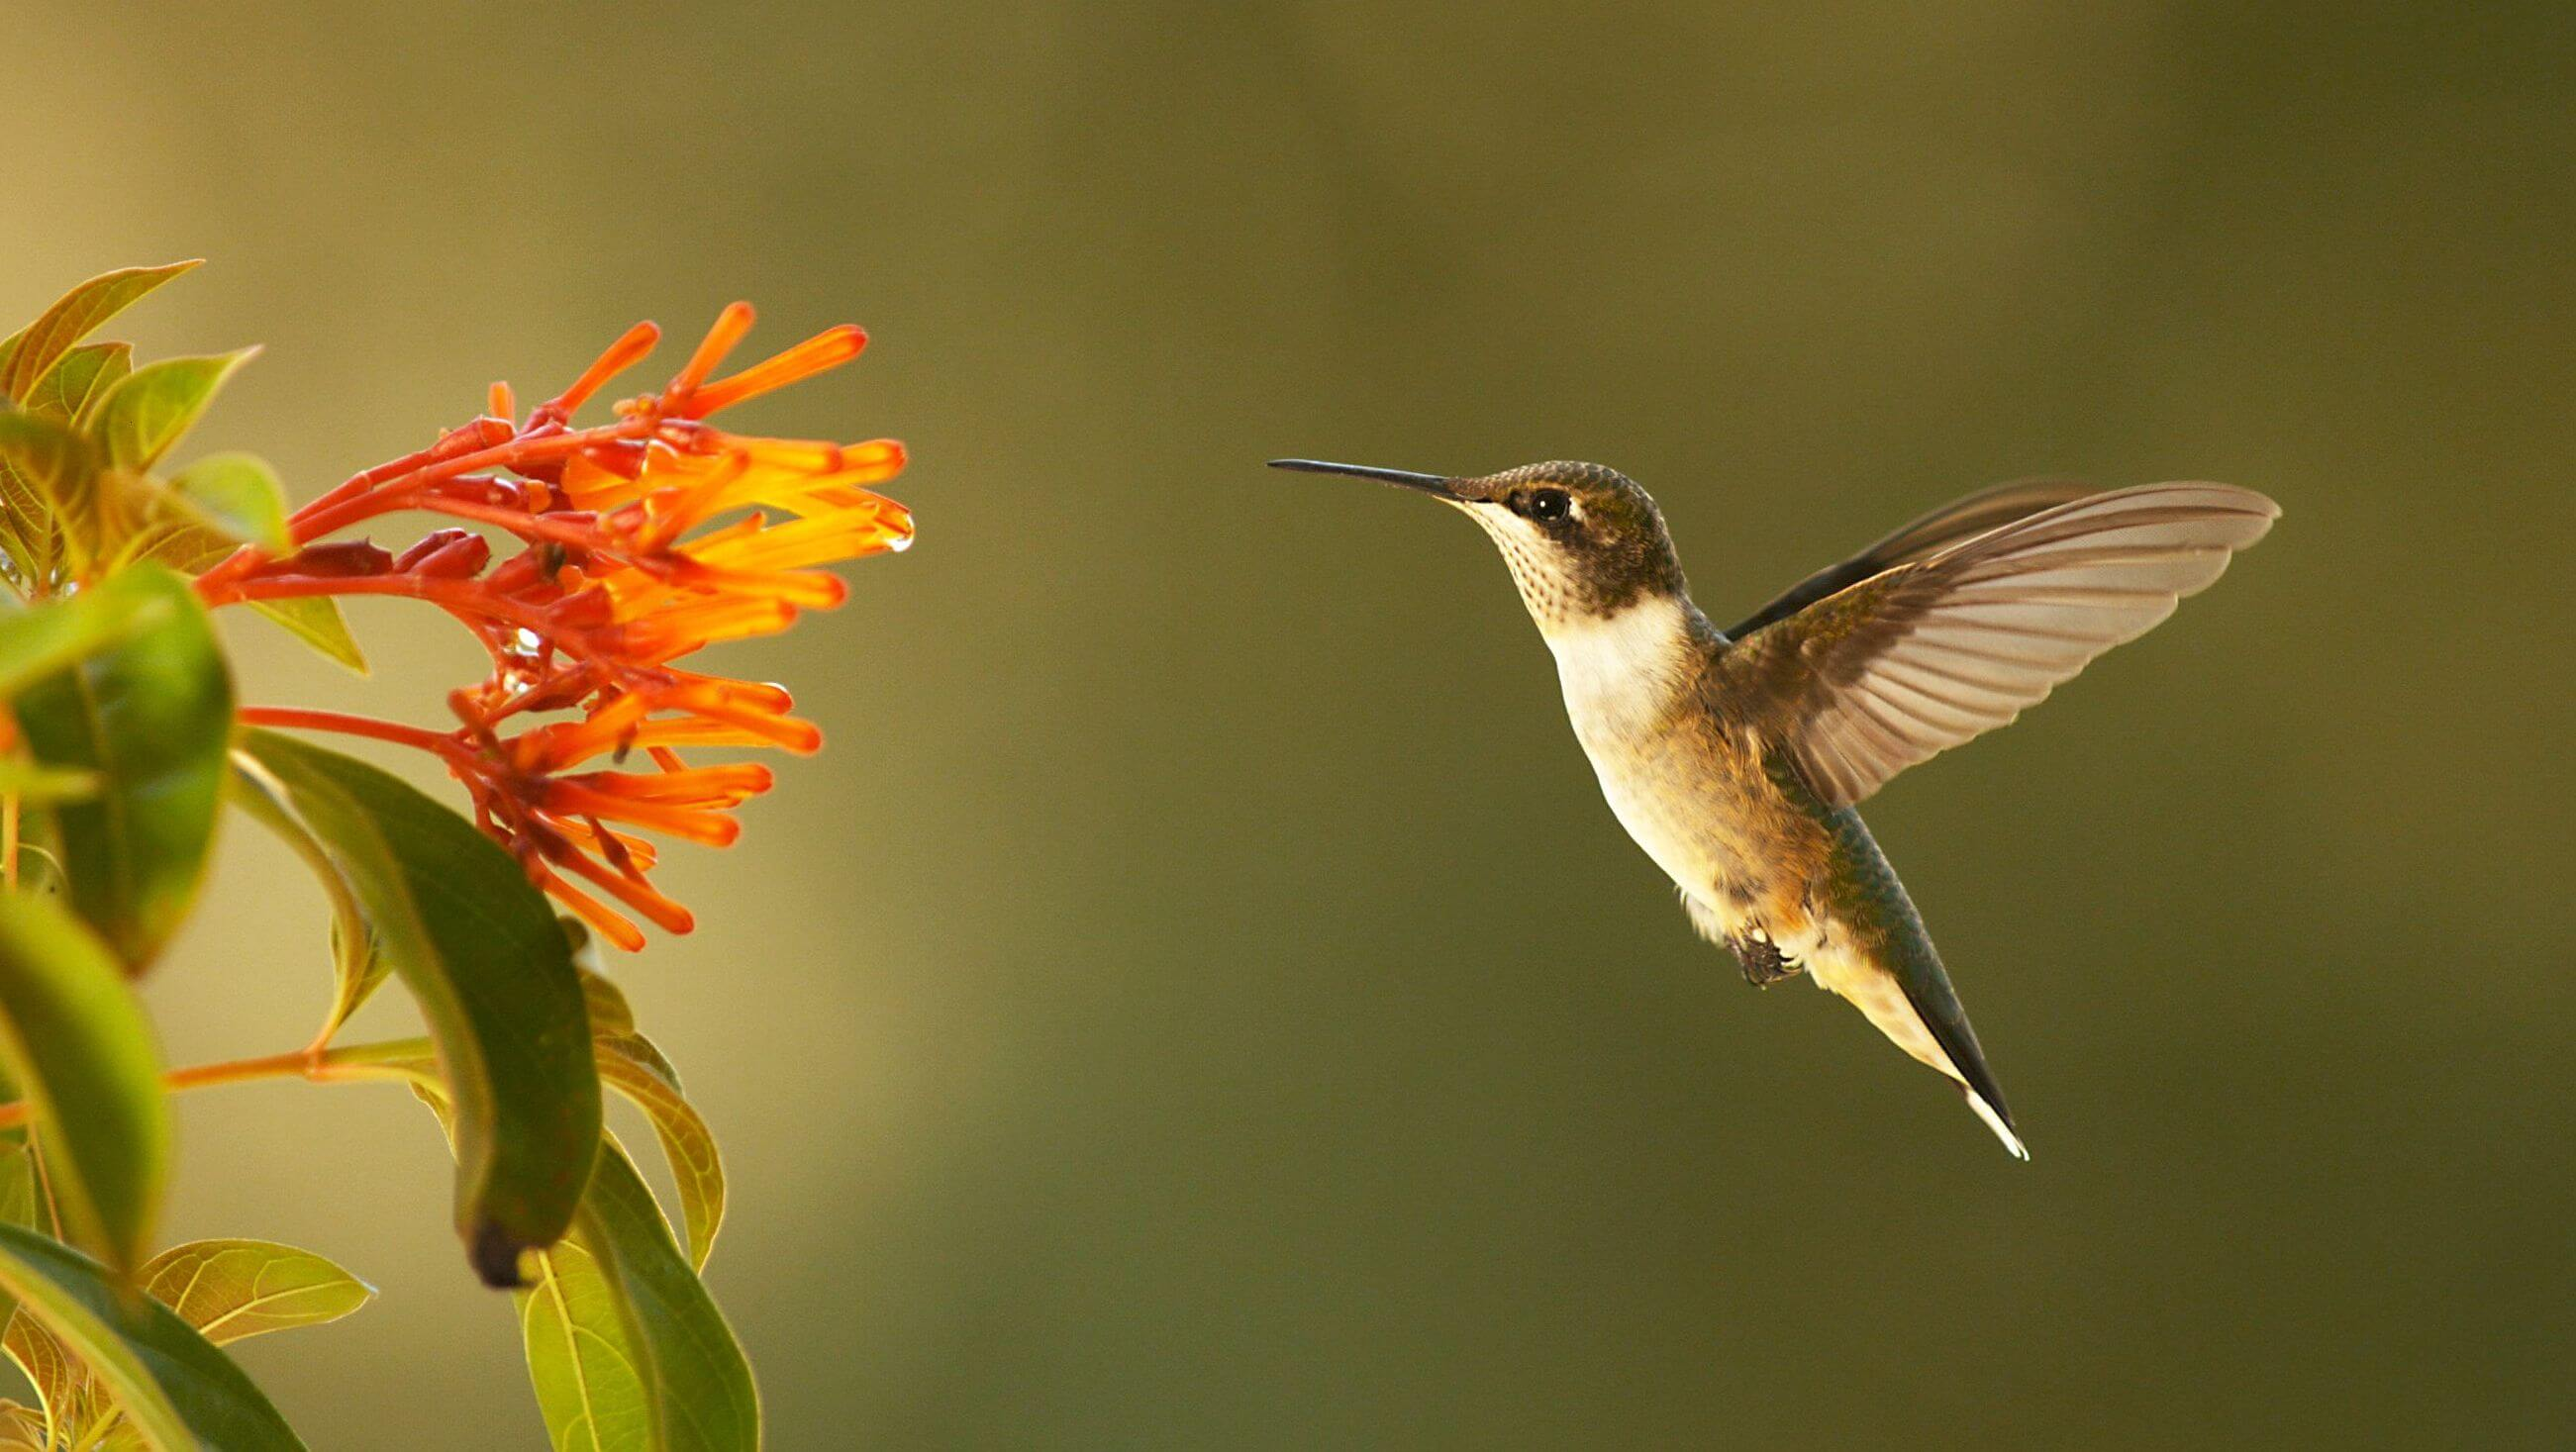 A garden where hummingbirds can be happy is all you need.